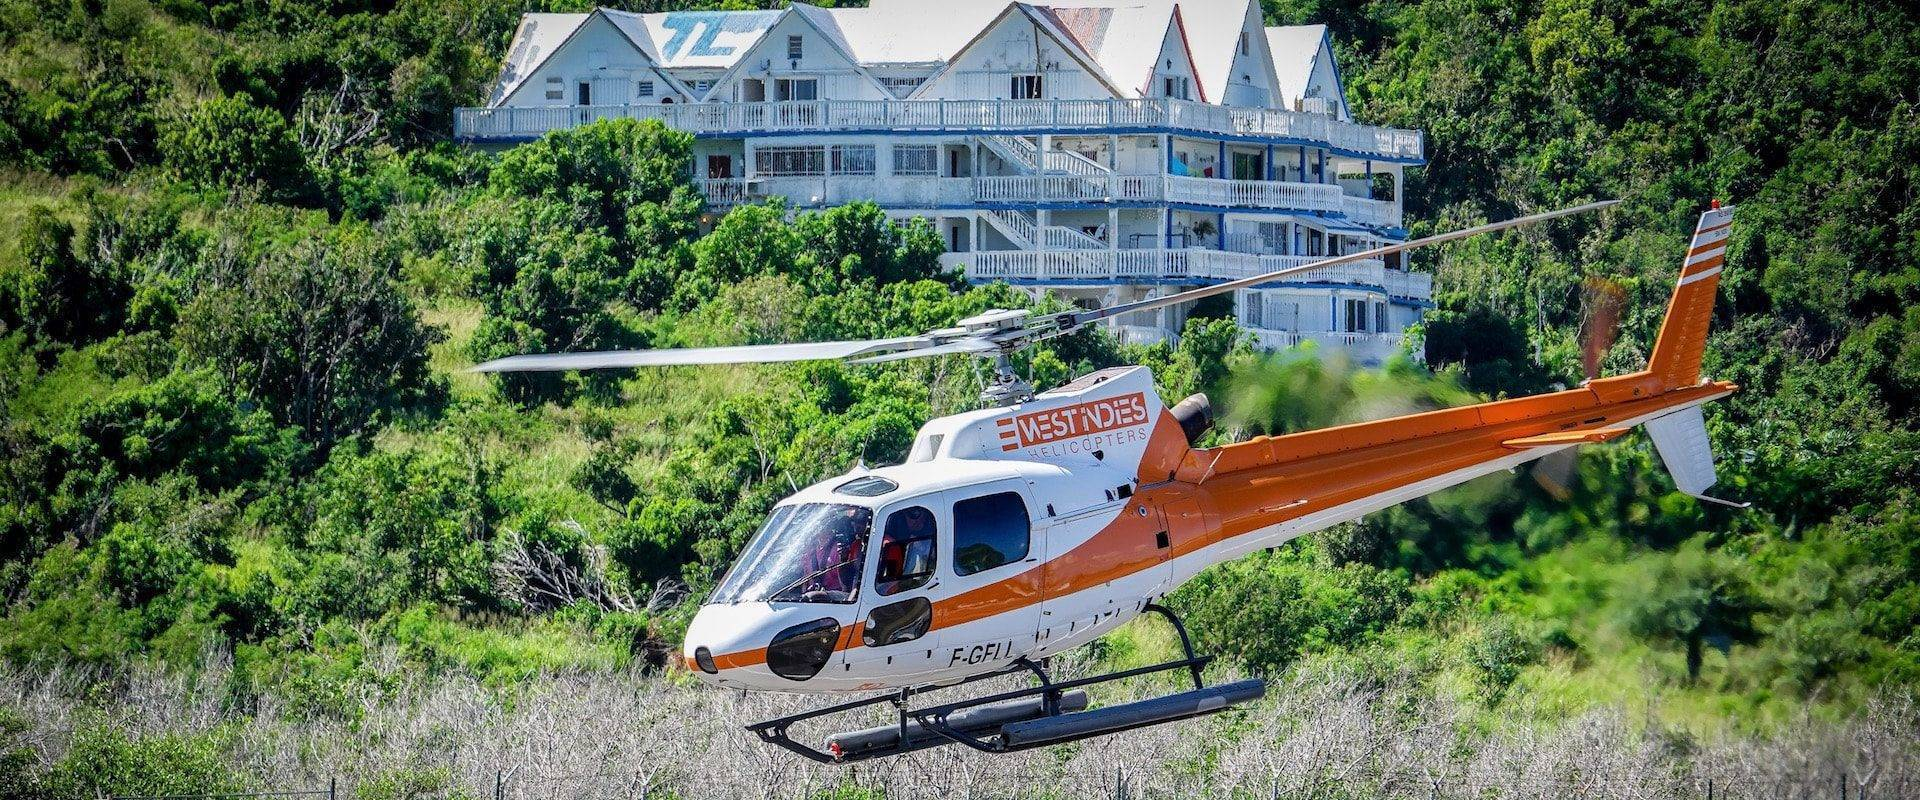 7-West-Indies-Helicoptere-St-Barth